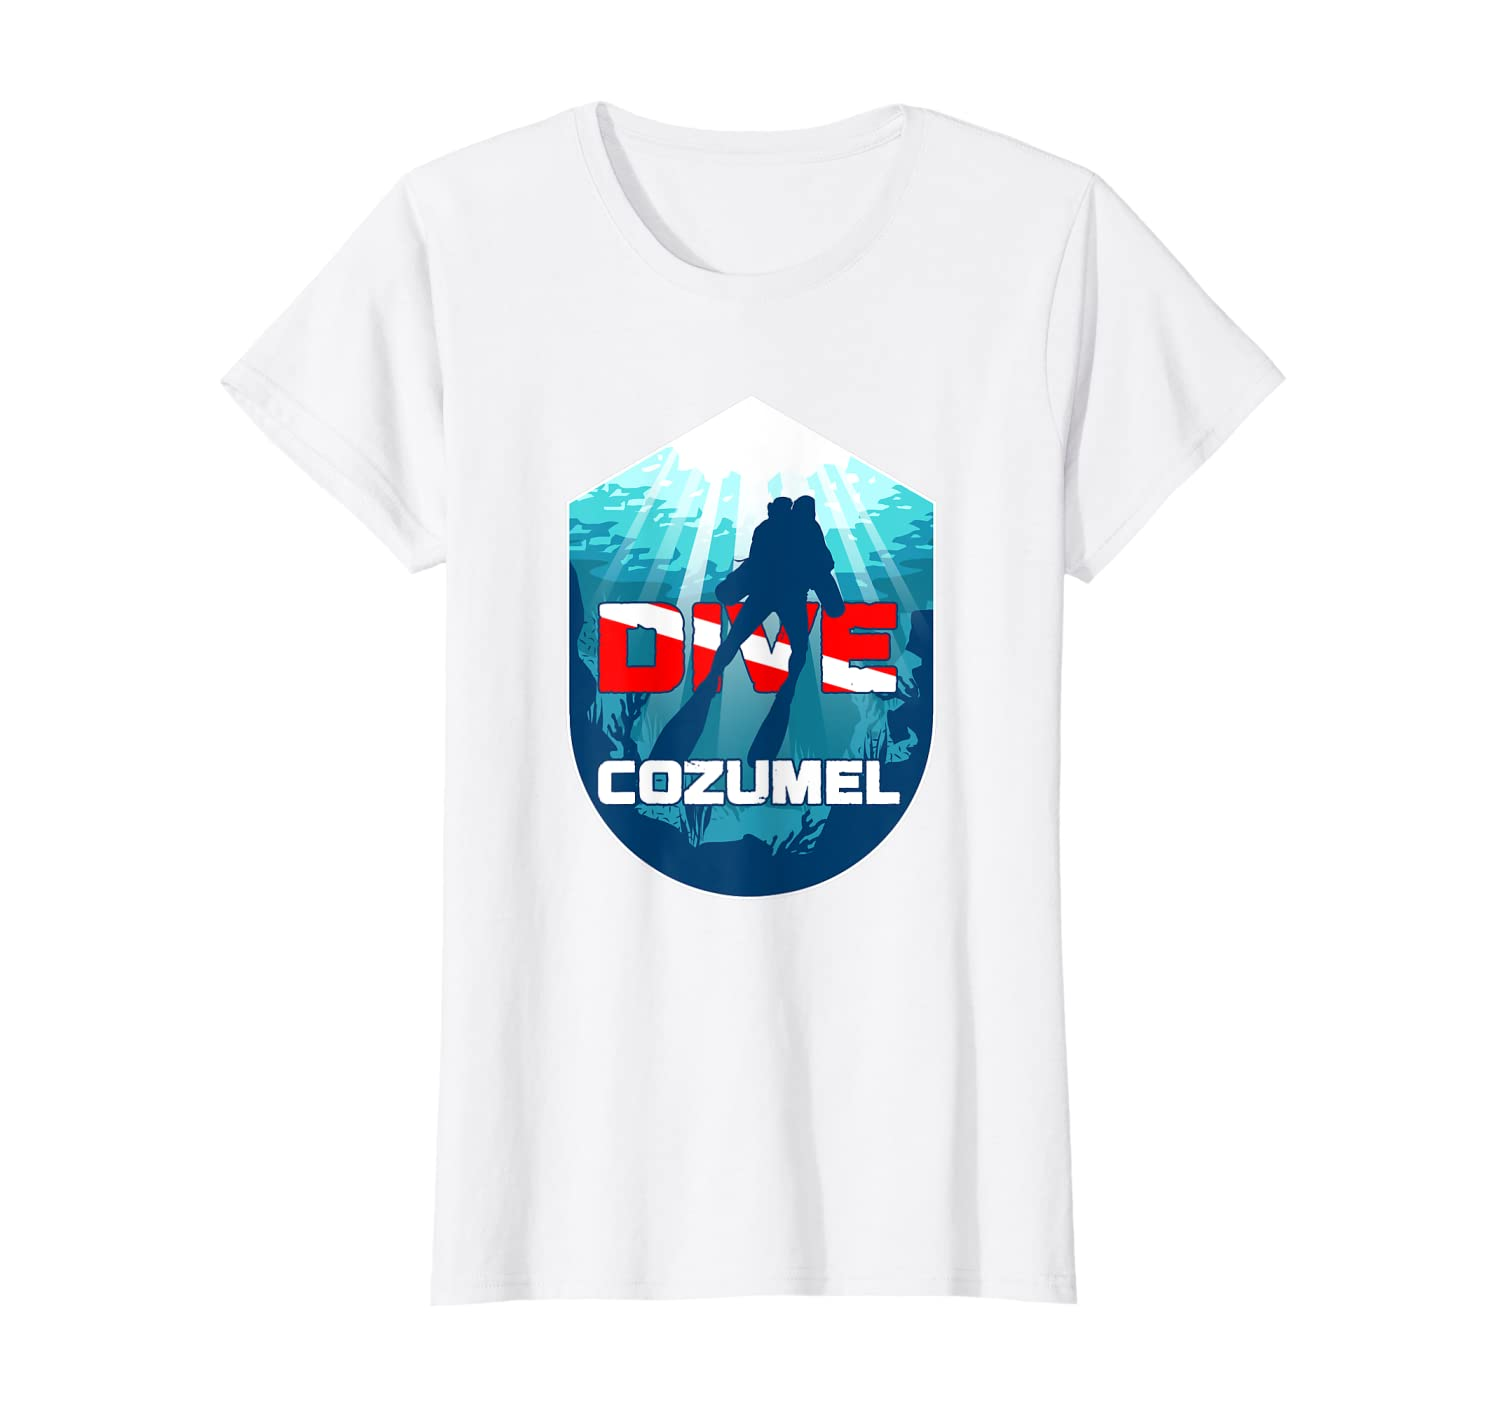 Cozumel Scuba Free Diving Snorkeling Mexican Vacation Gift T-Shirt Unisex Tshirt